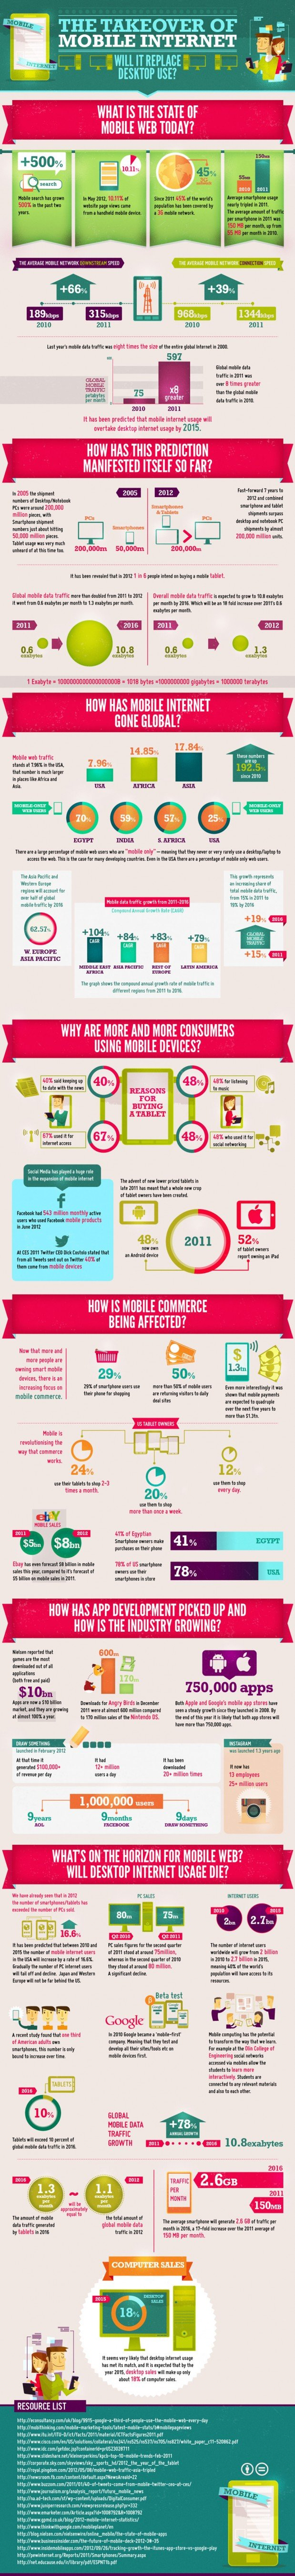 The Takeover of Mobile Internet [Infographic]